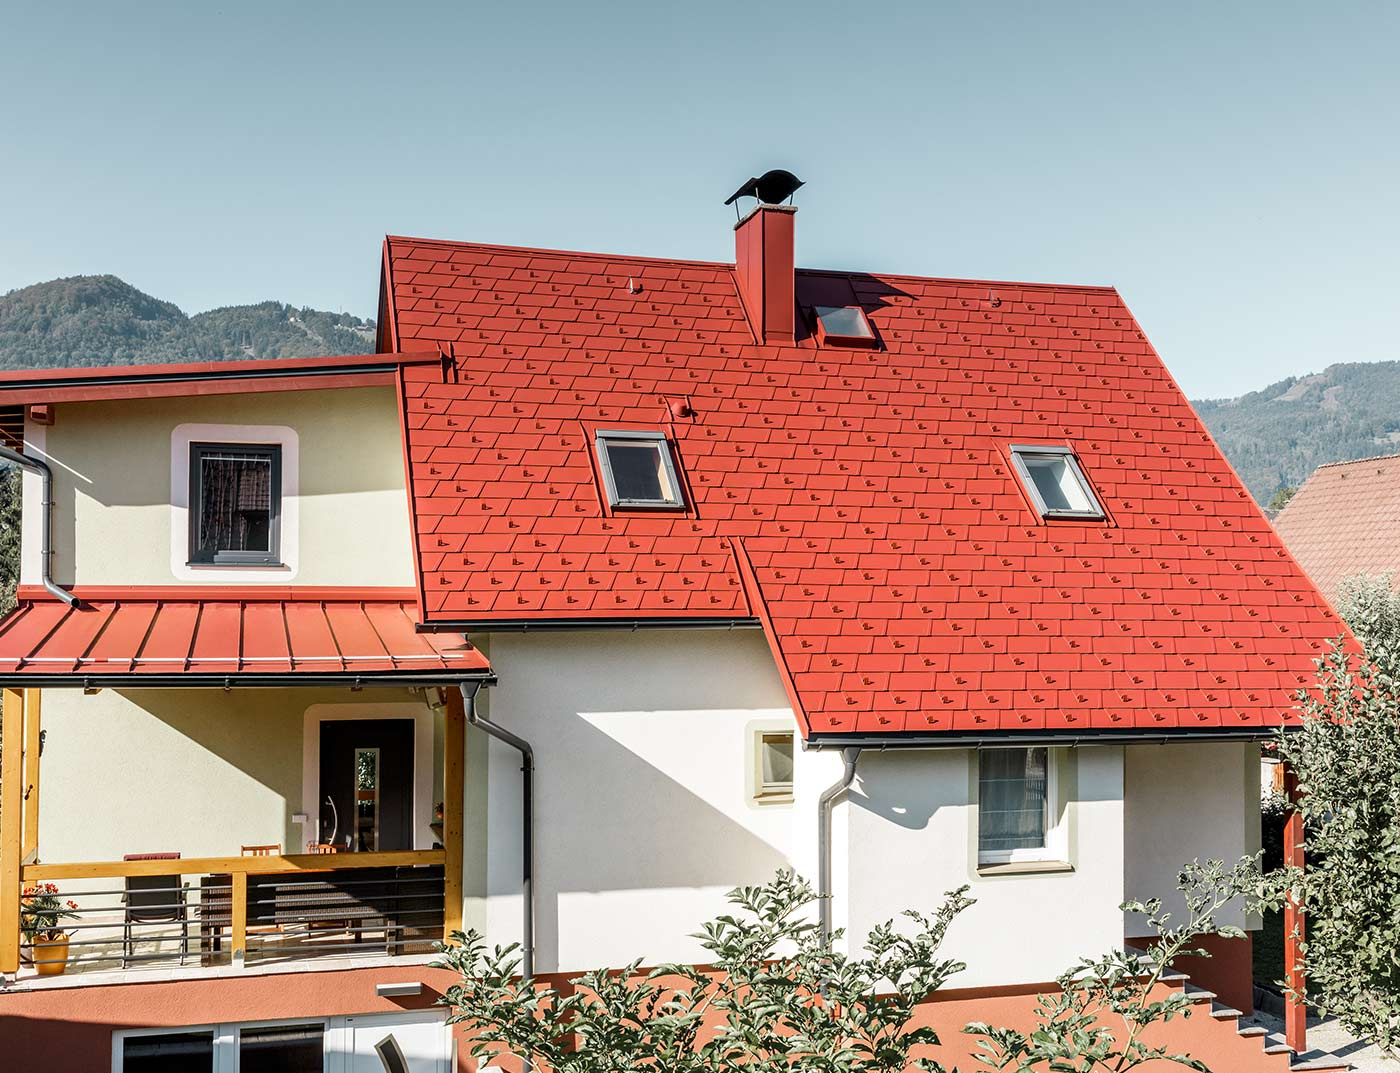 Classic single-family house with two skylights and chimney, roofed with the new PREFA DS.19 shingle in P.10 oxide red.